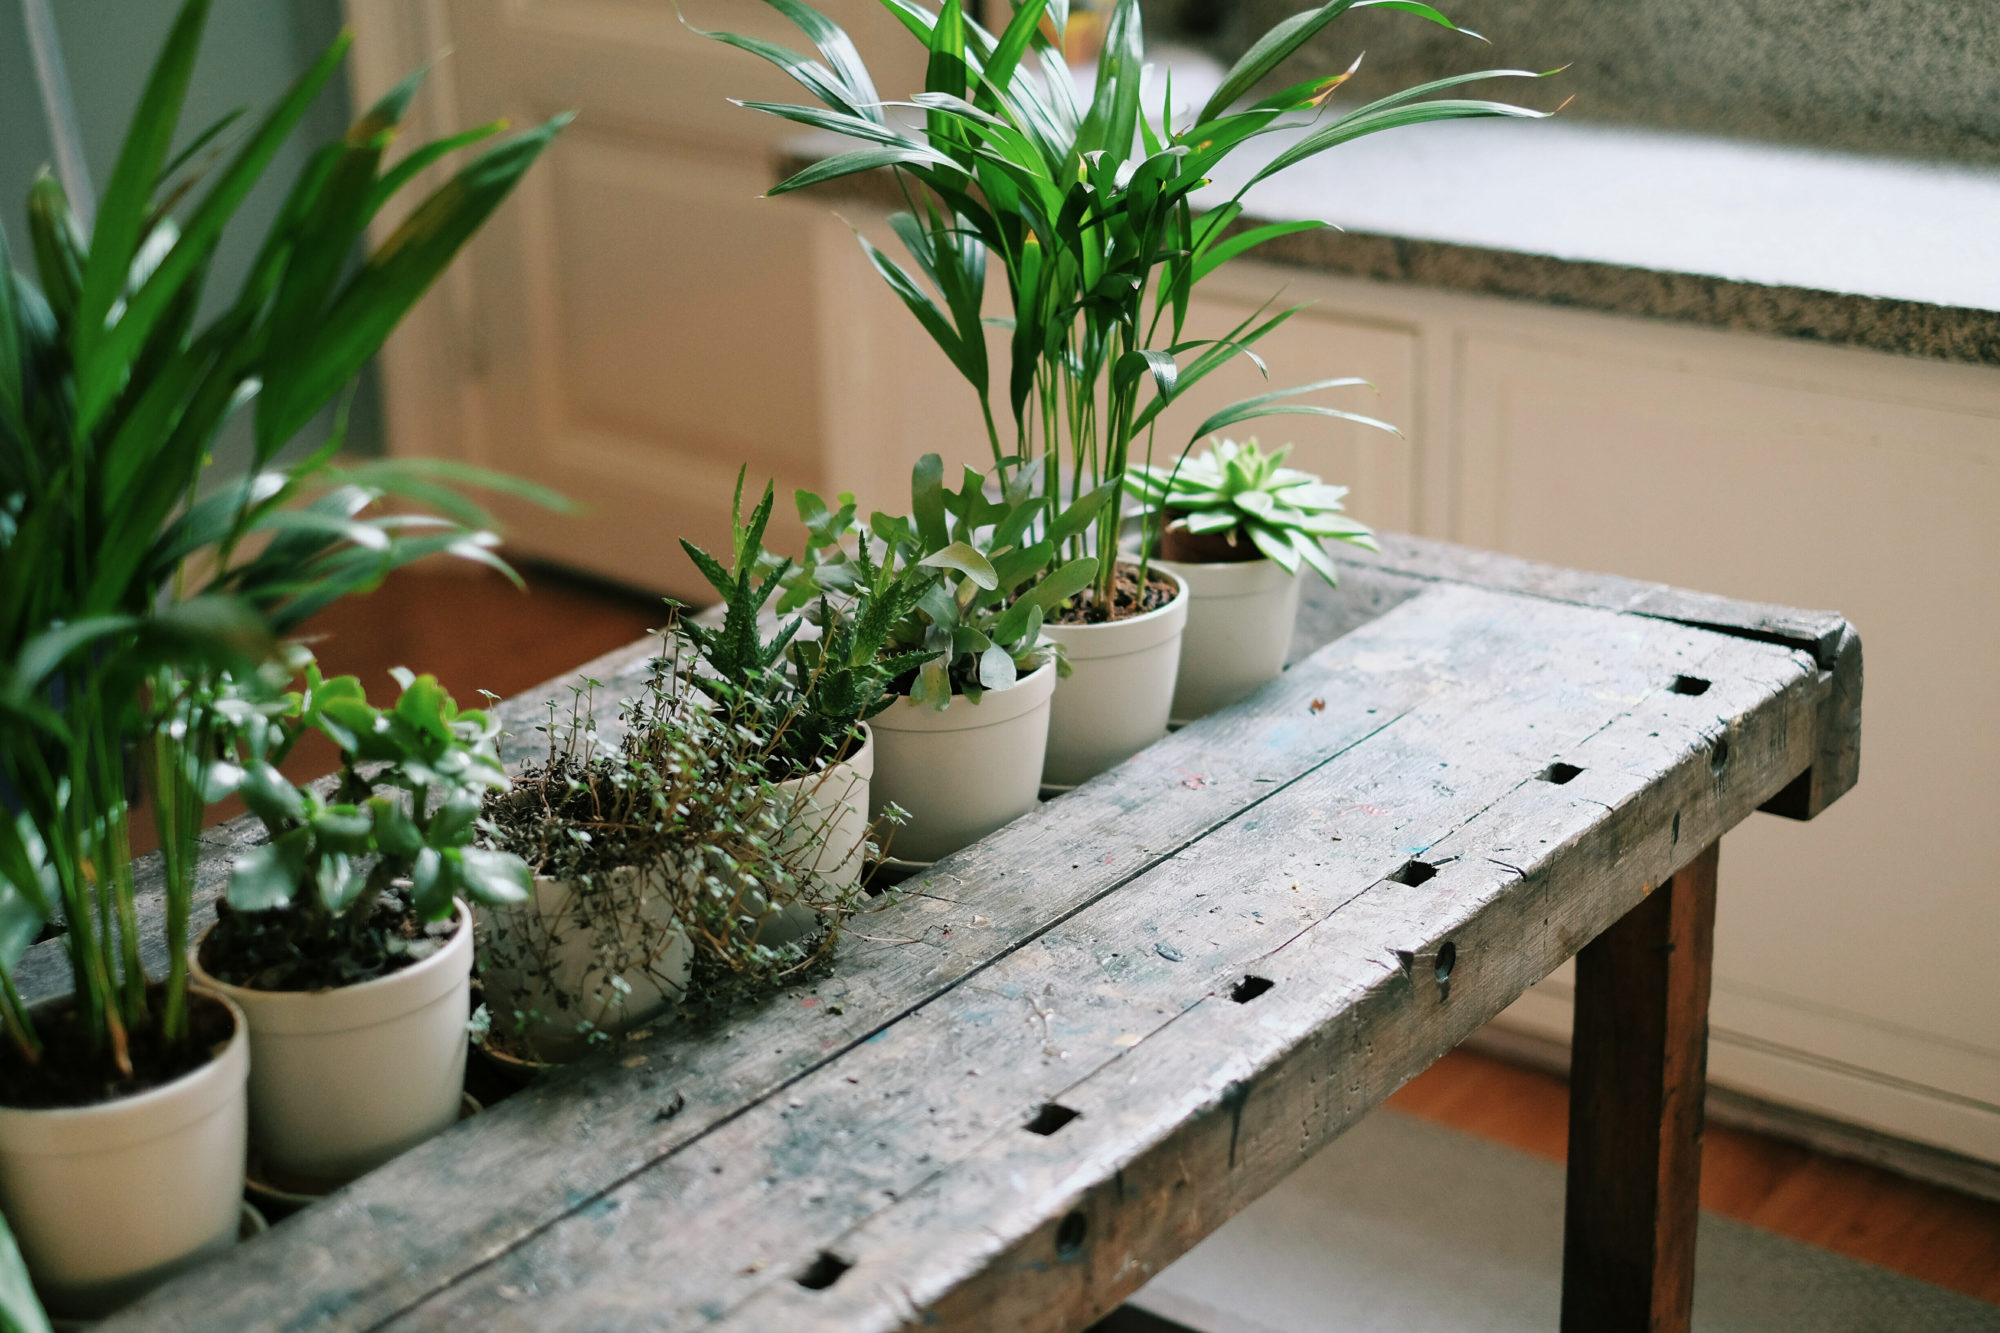 How to Propagate Your Houseplants